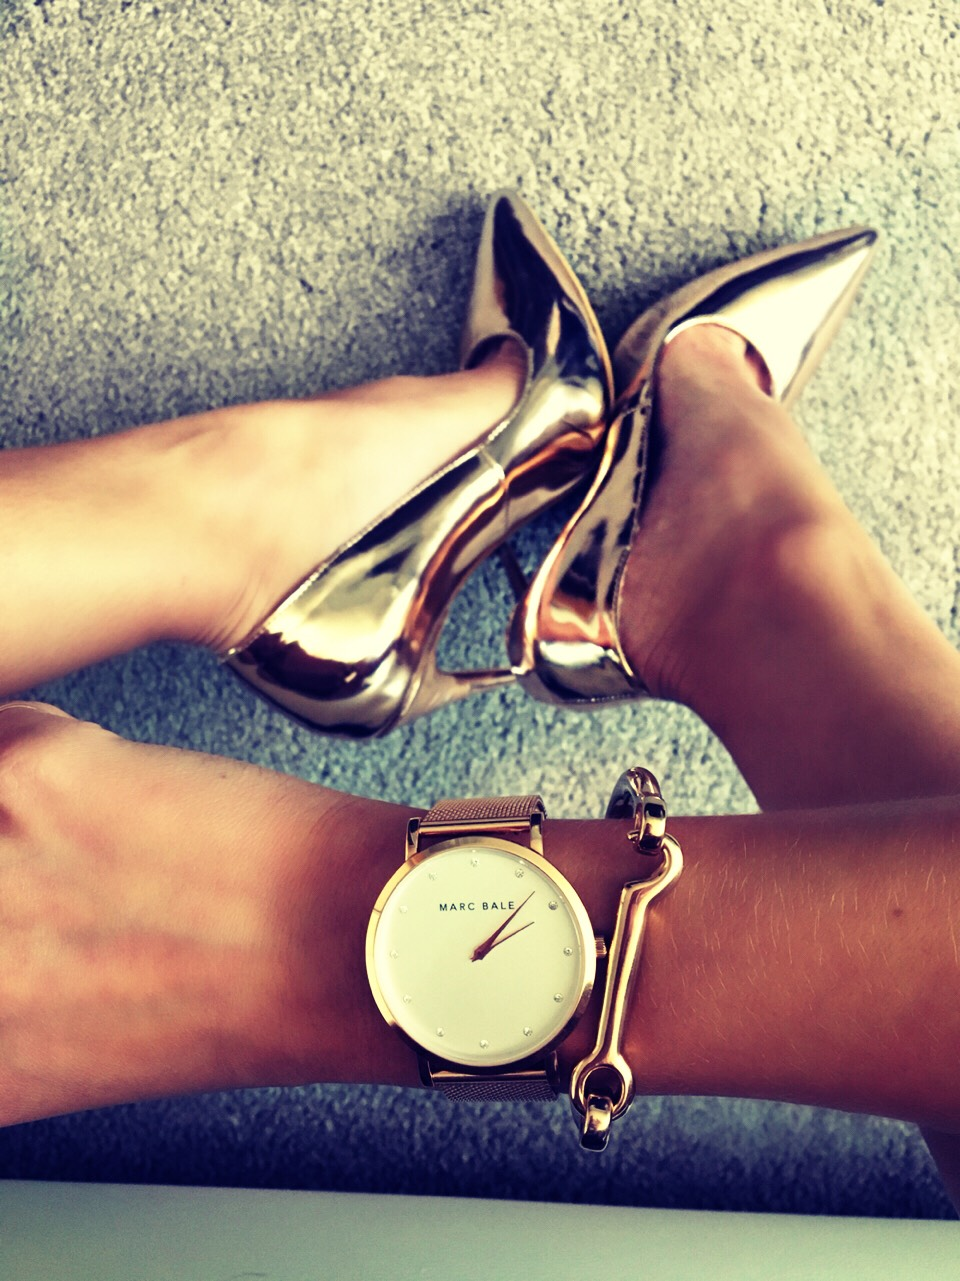 """Voucher for Rose Gold Jewellery . Free gift with Marc Bale watch Use code """"laurabudryte"""" for 15% off at www.thepeachbox.com and get a free peach leather strap with your rose gold watch!"""